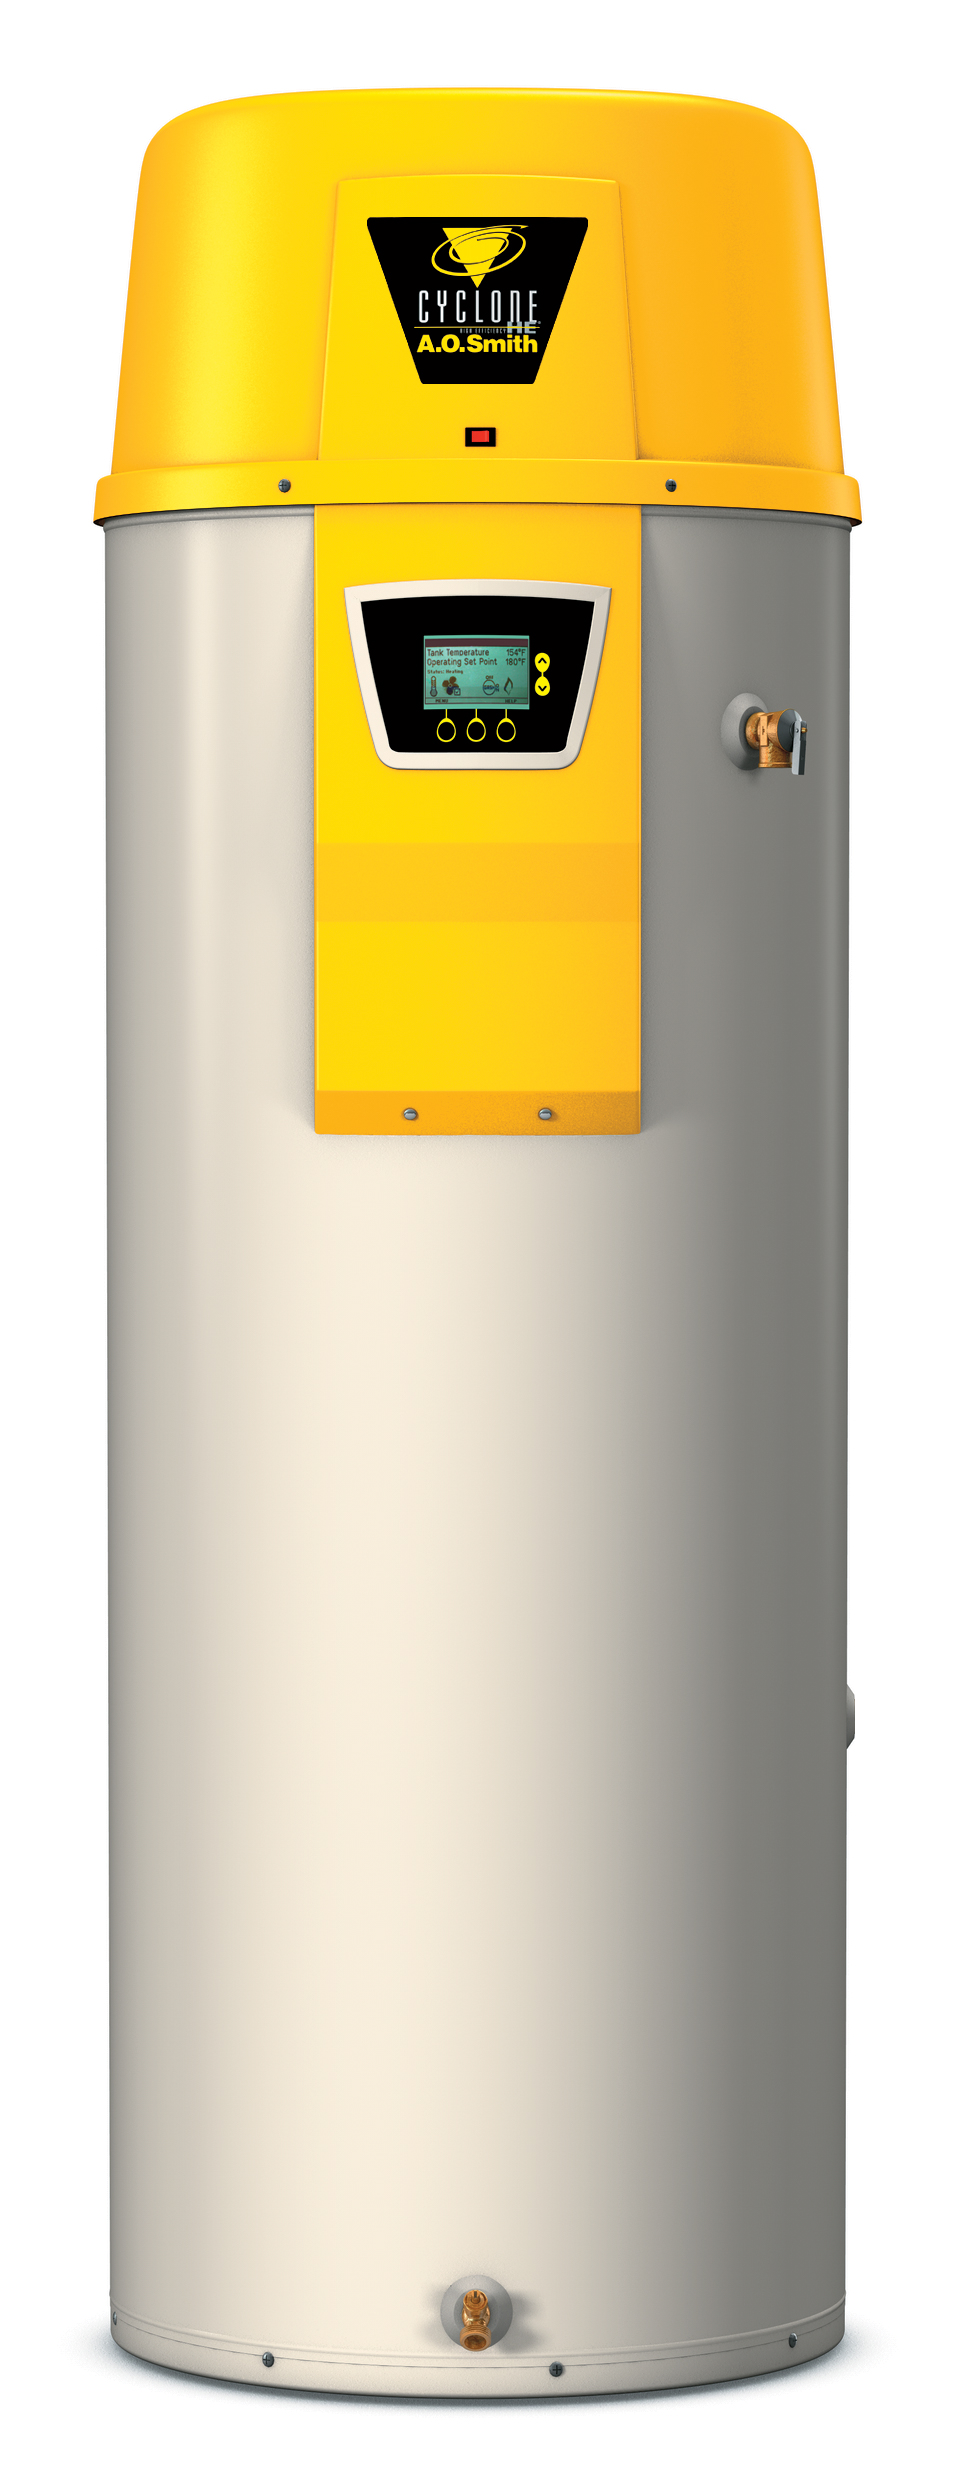 Electric hot water heater venting - Hi Res Images